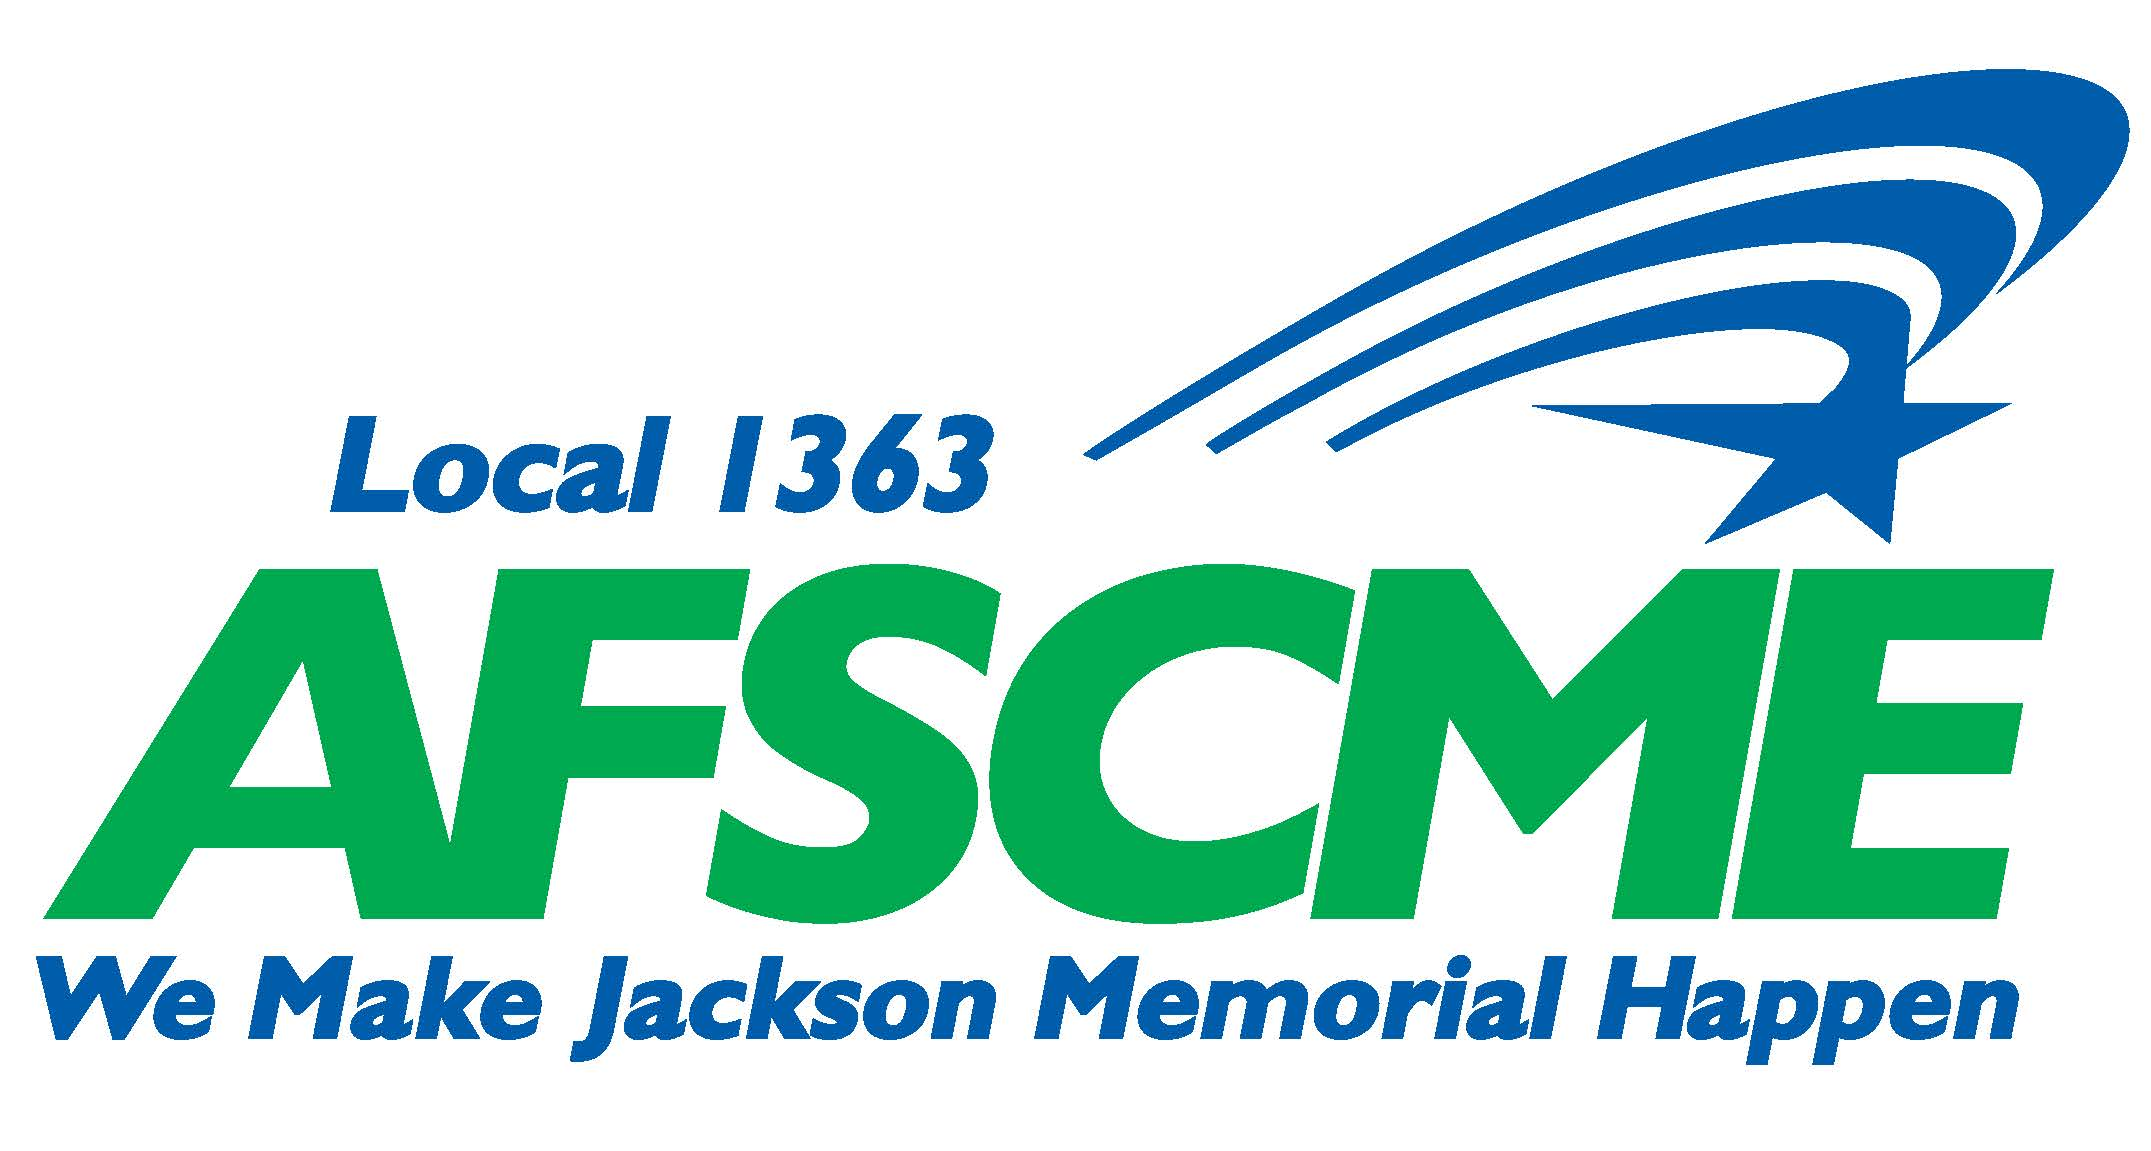 AFSCME Local 1363